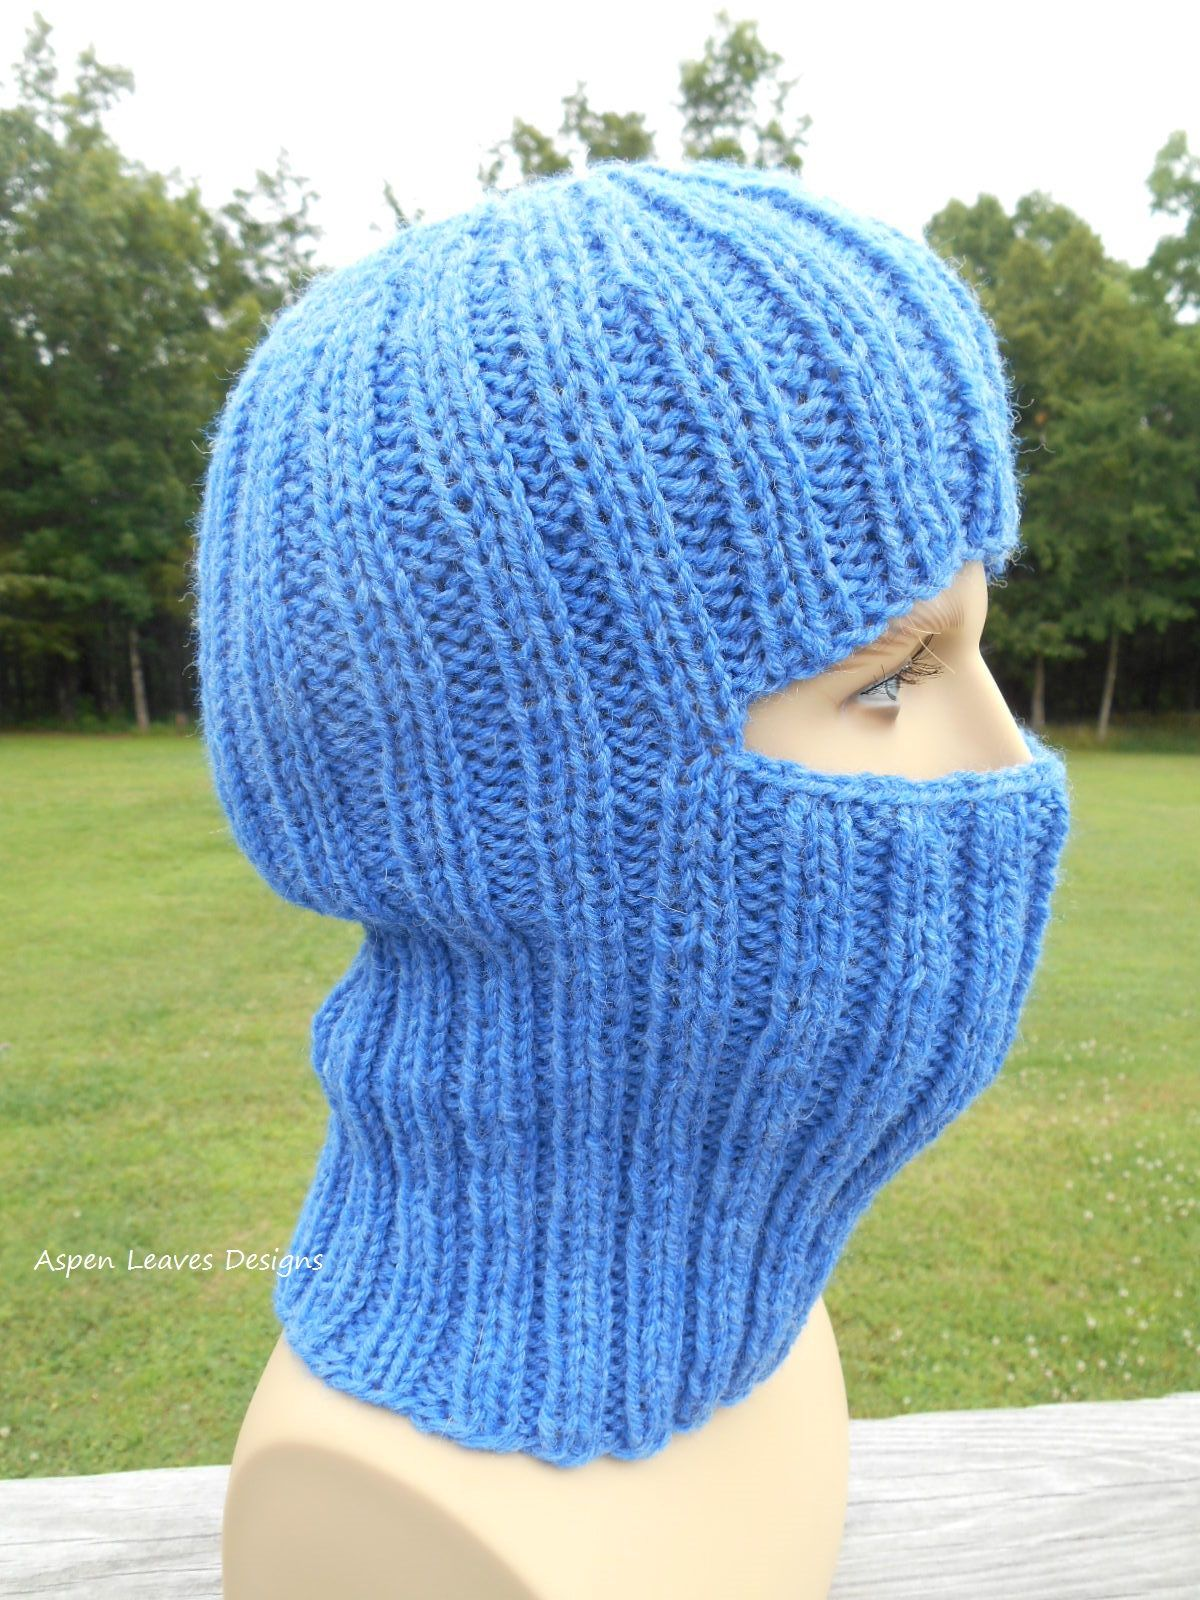 Adult Balaclava in medium blue. Full face covering winter ski mask ...